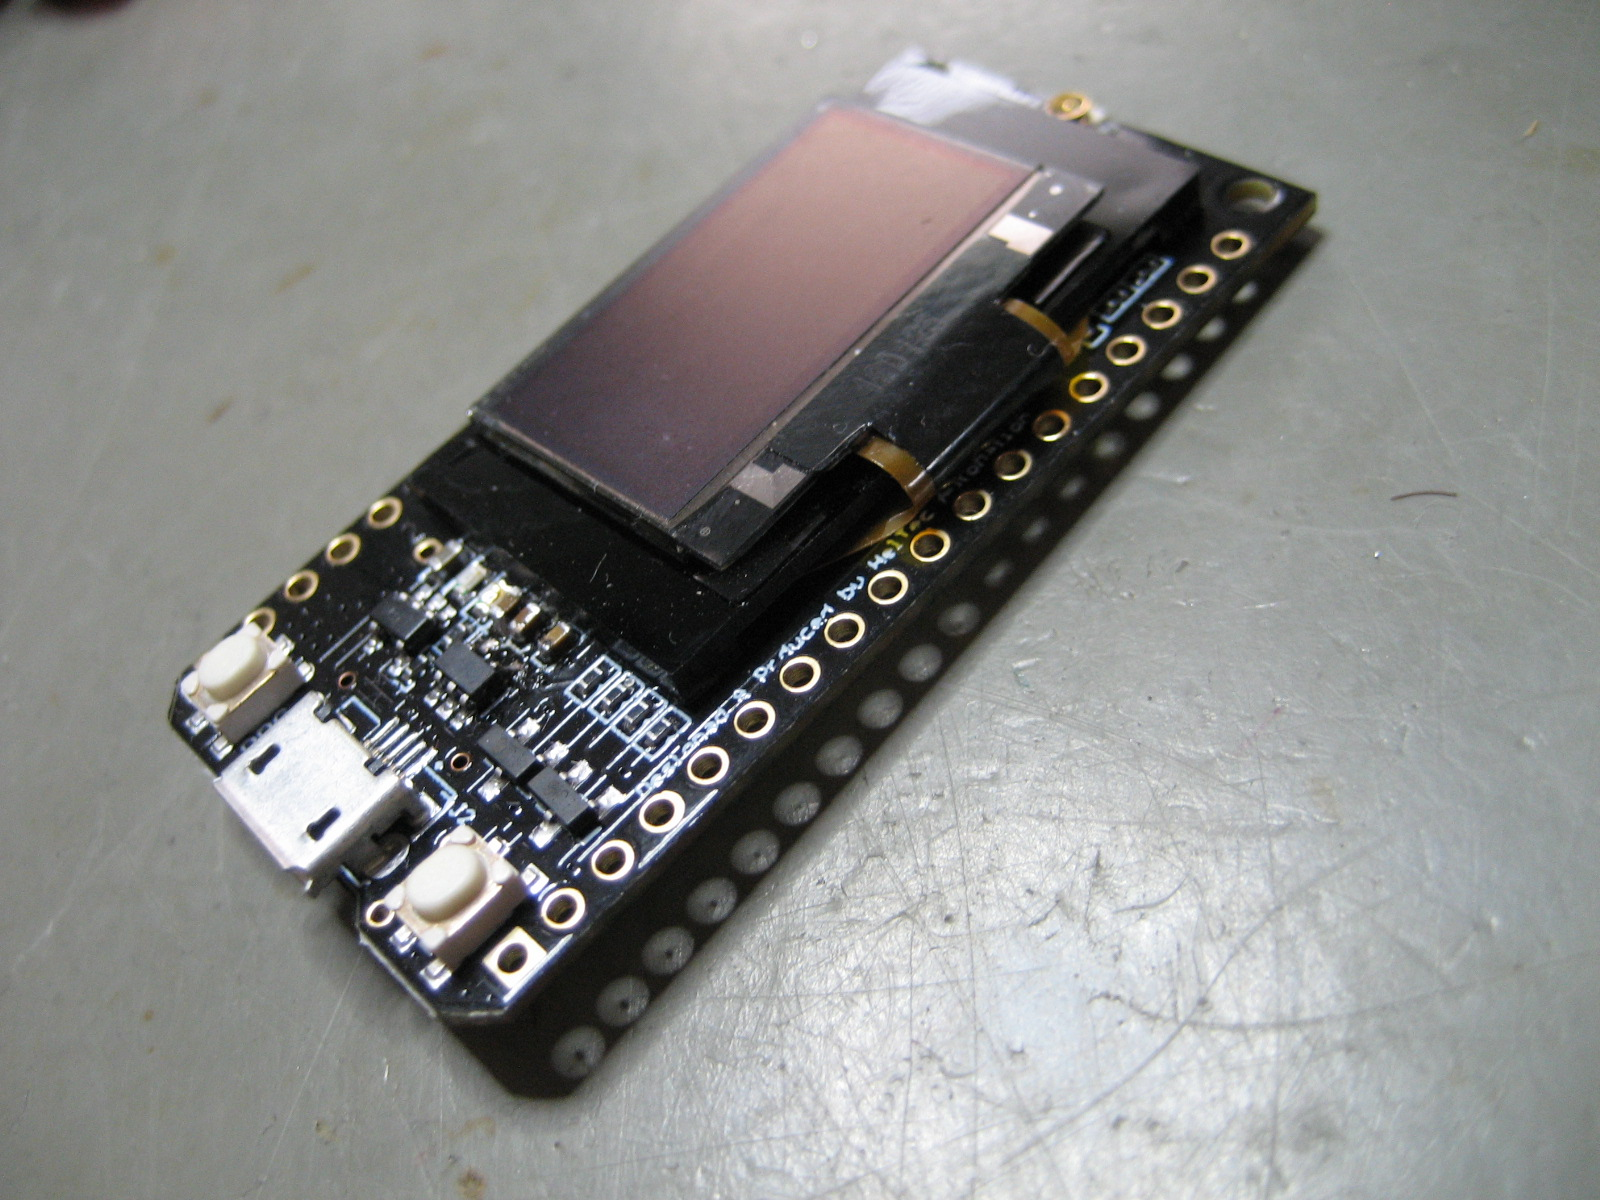 Big ESP32 + SX127x topic part 3 - End Devices (Nodes) - The Things